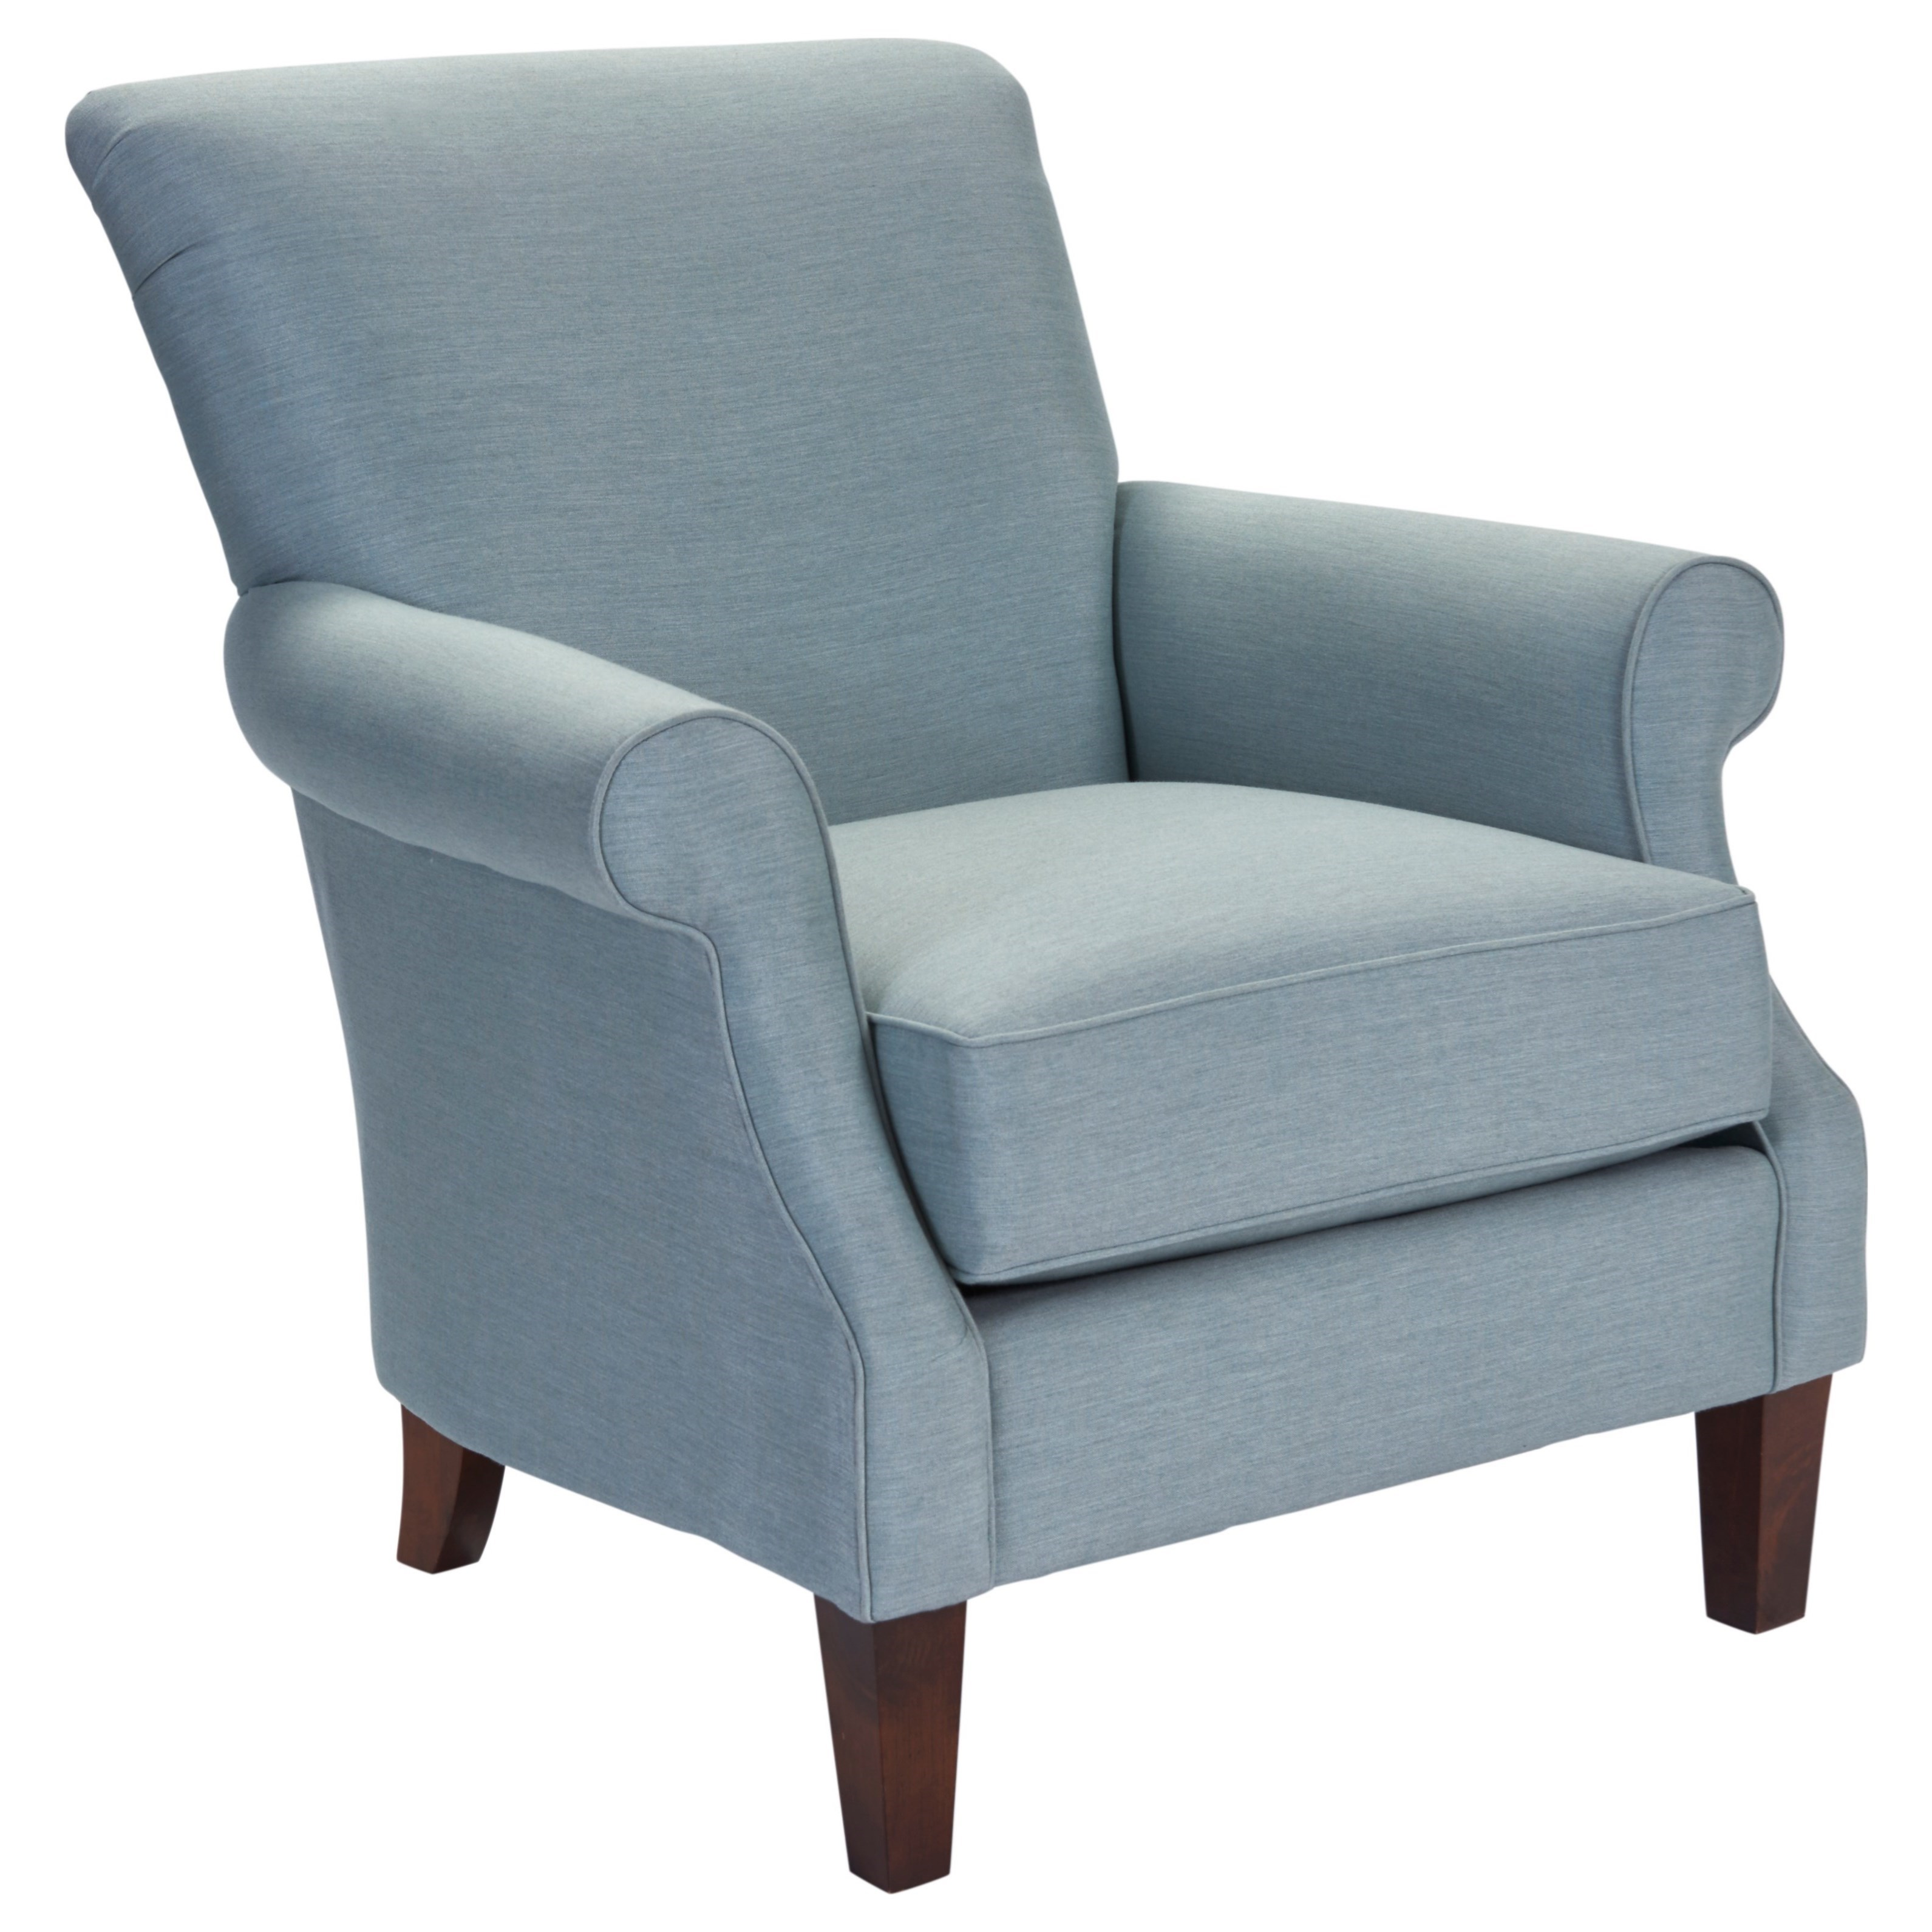 Recliner Jordan Furniture Jordan Accent Chair With Rolled Arms By Broyhill Furniture At Lindy S Furniture Company